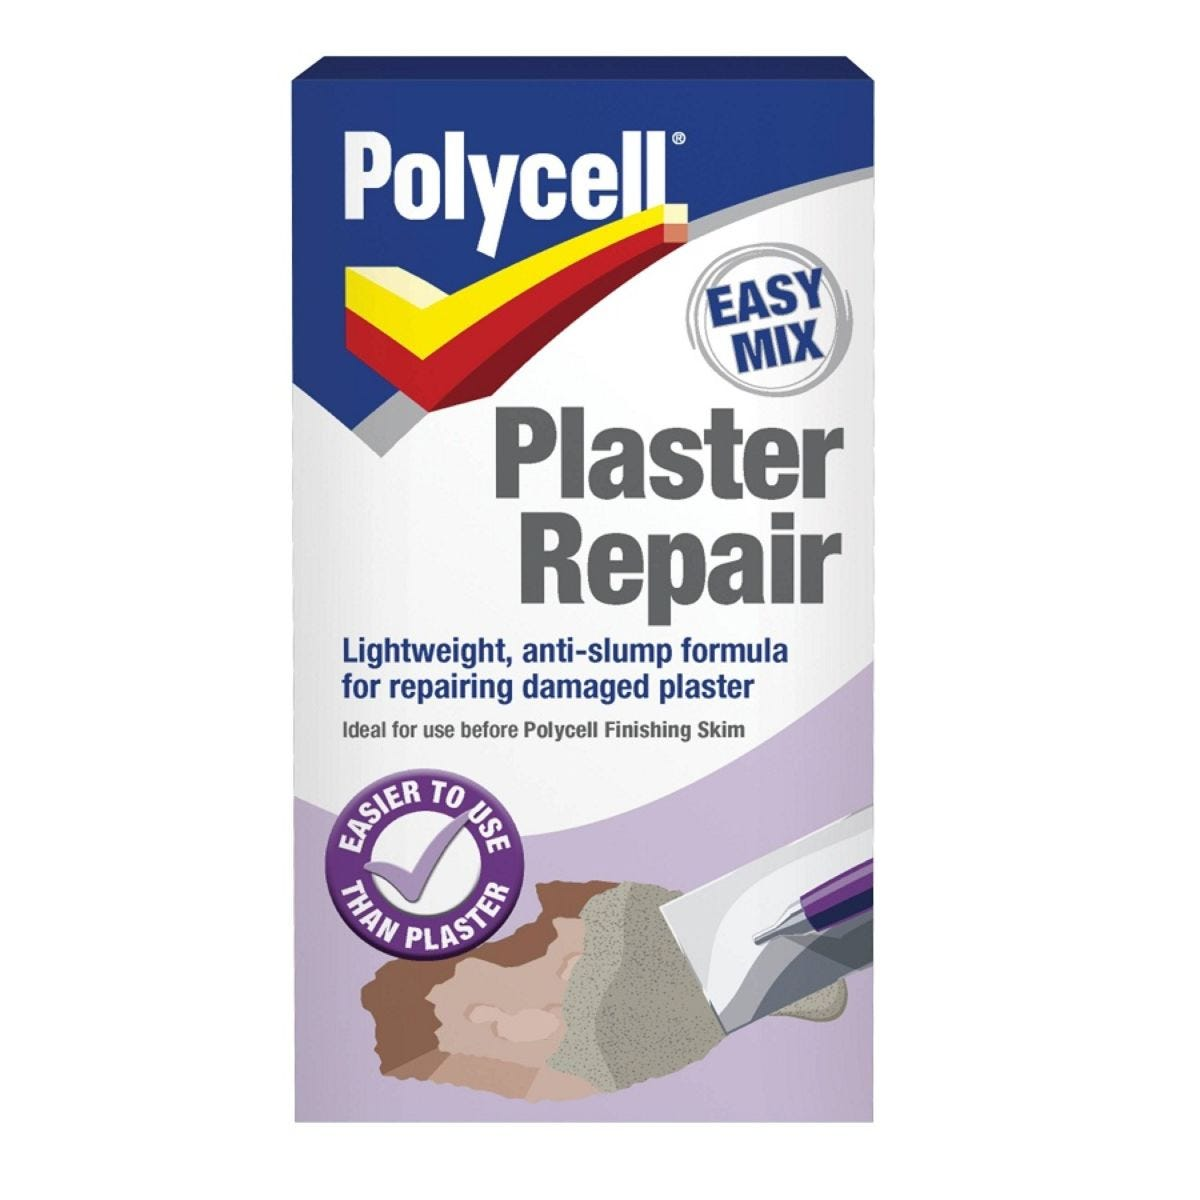 Polycell Plaster Repair 450g